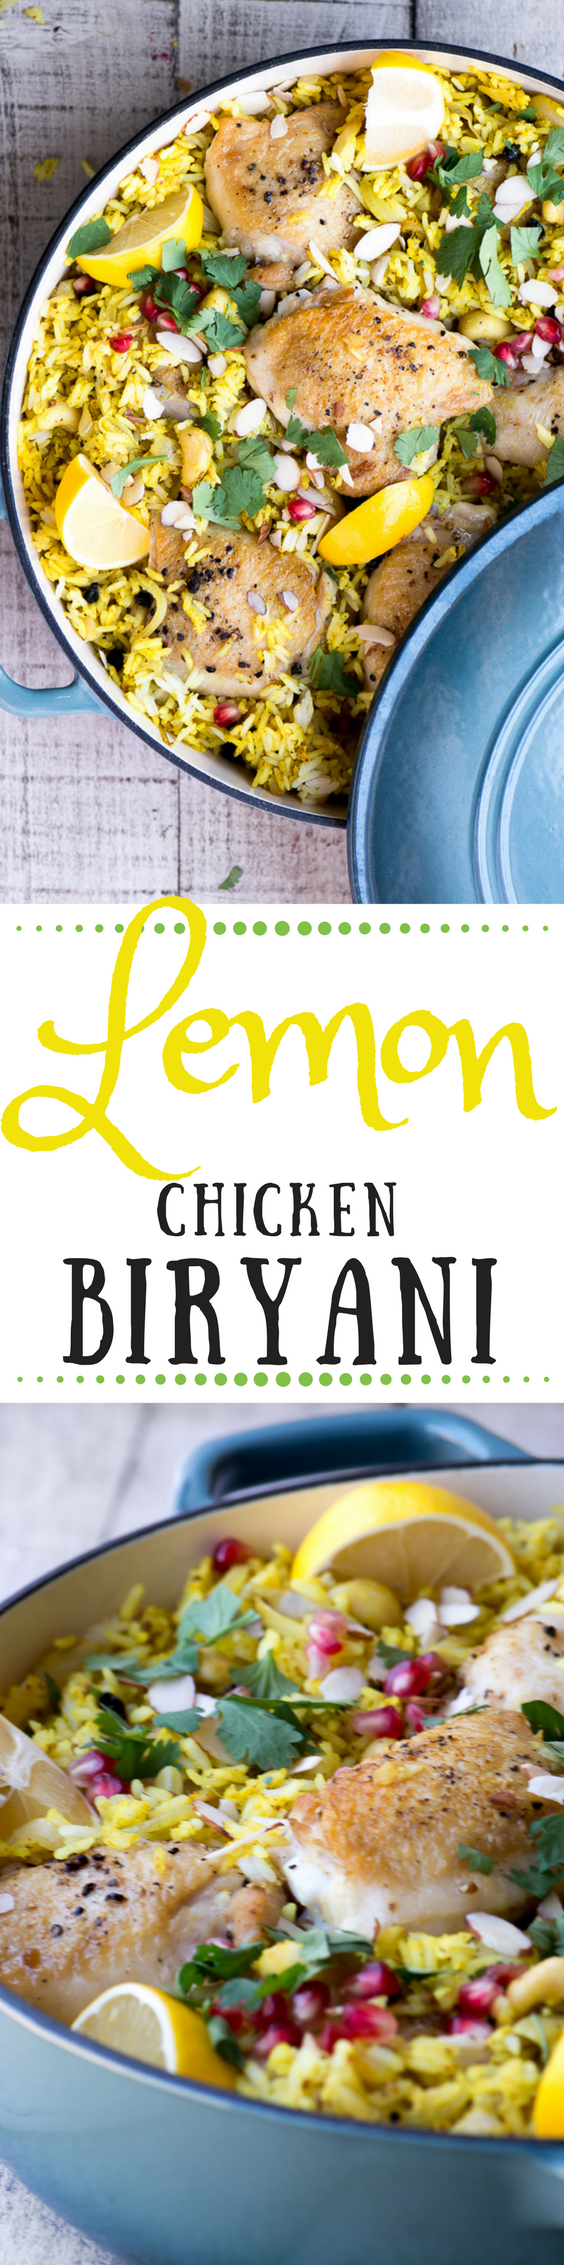 Lemon Chicken Briyani is a vibrant, aromatic one pot chicken thighs and basmati rice meal ~ theviewfromgreatisland.com